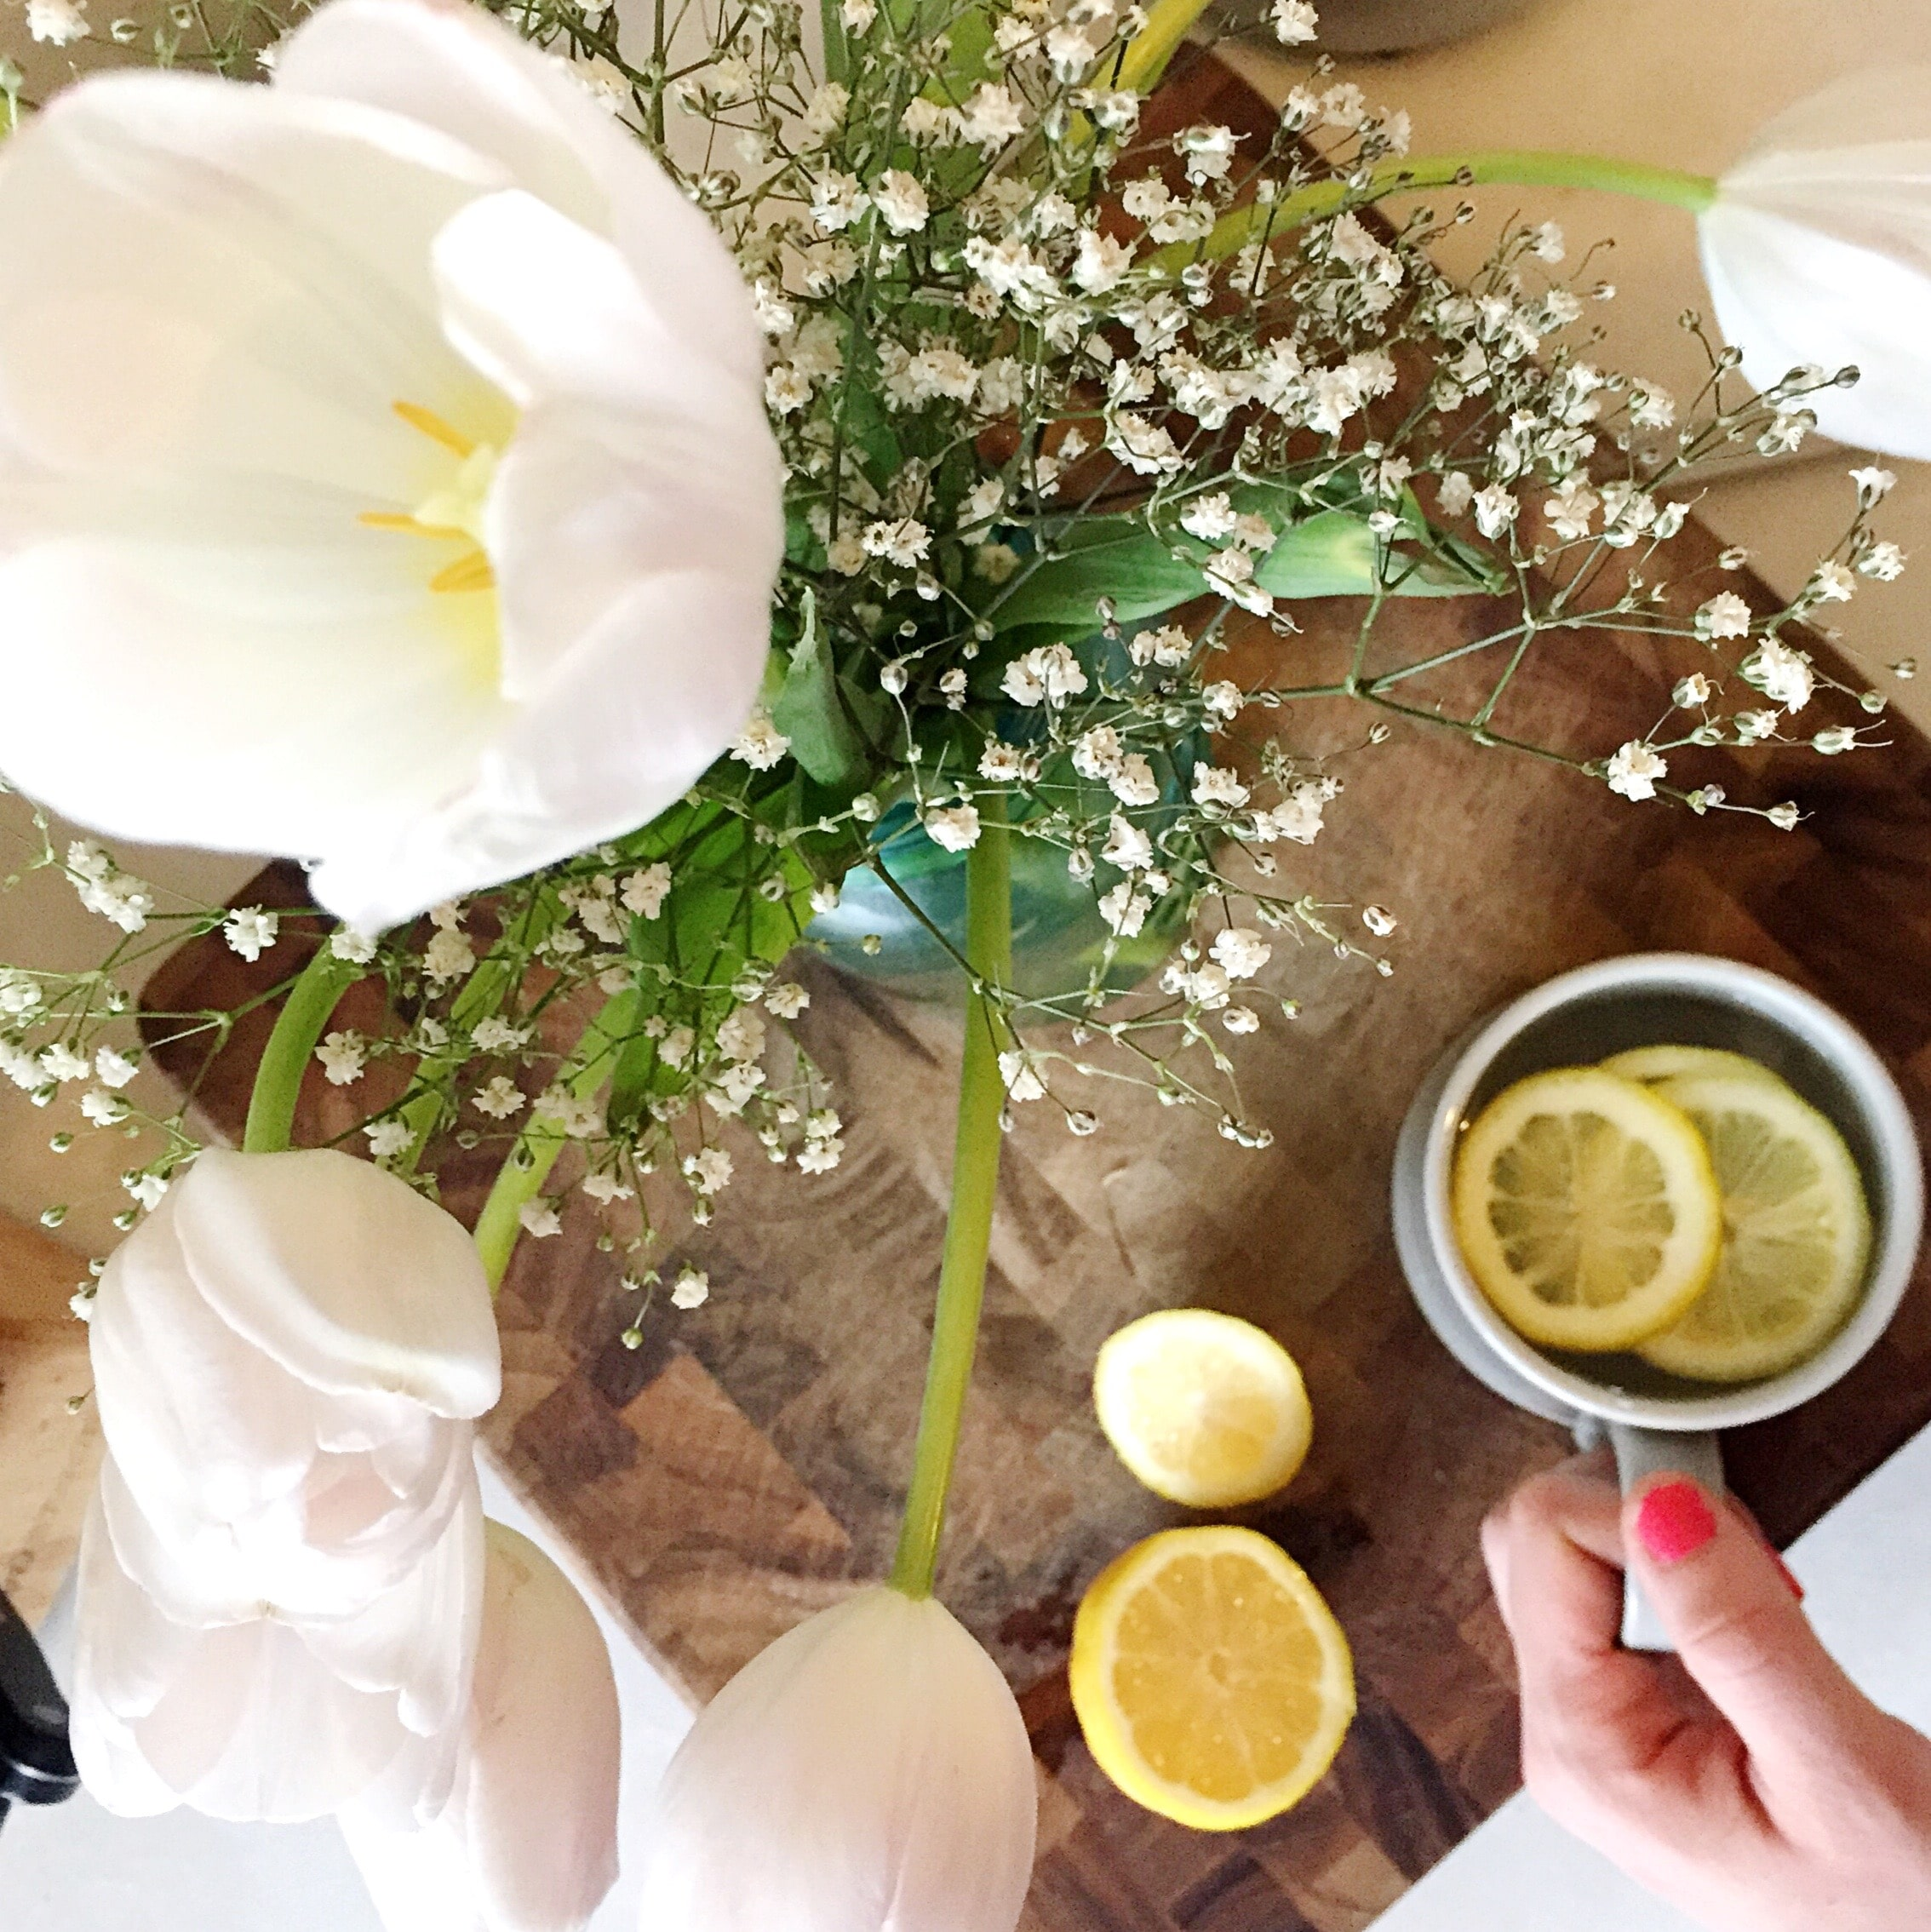 Lemon water and flowers